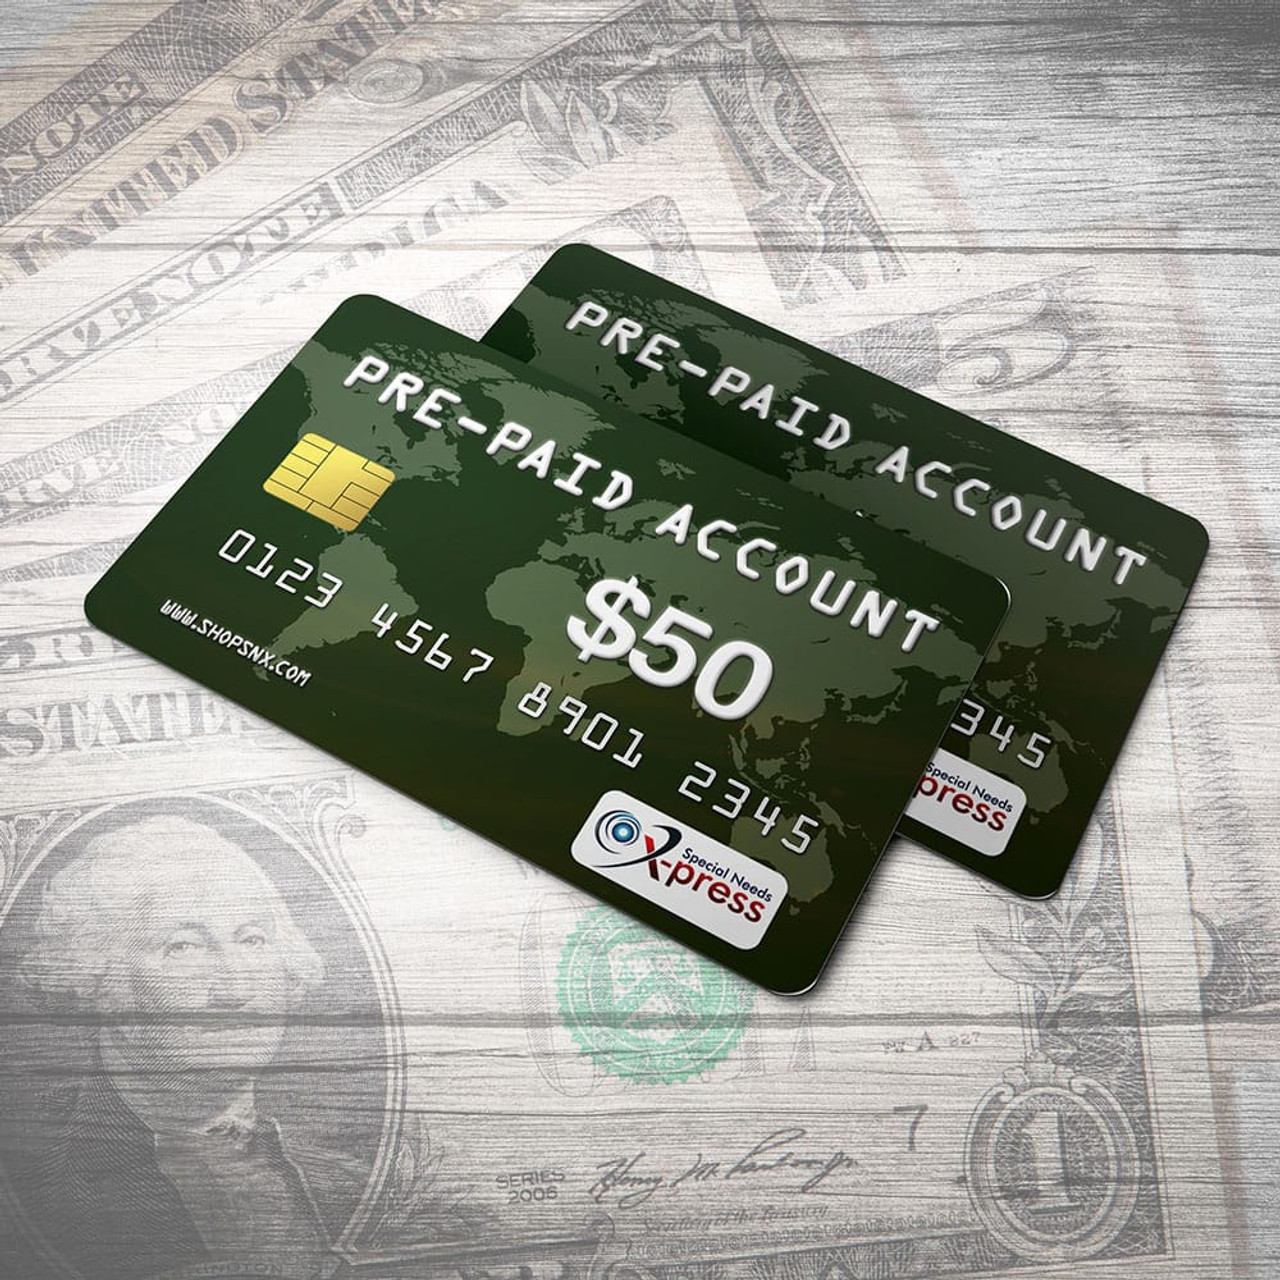 Pre-Paid Account for $50.00